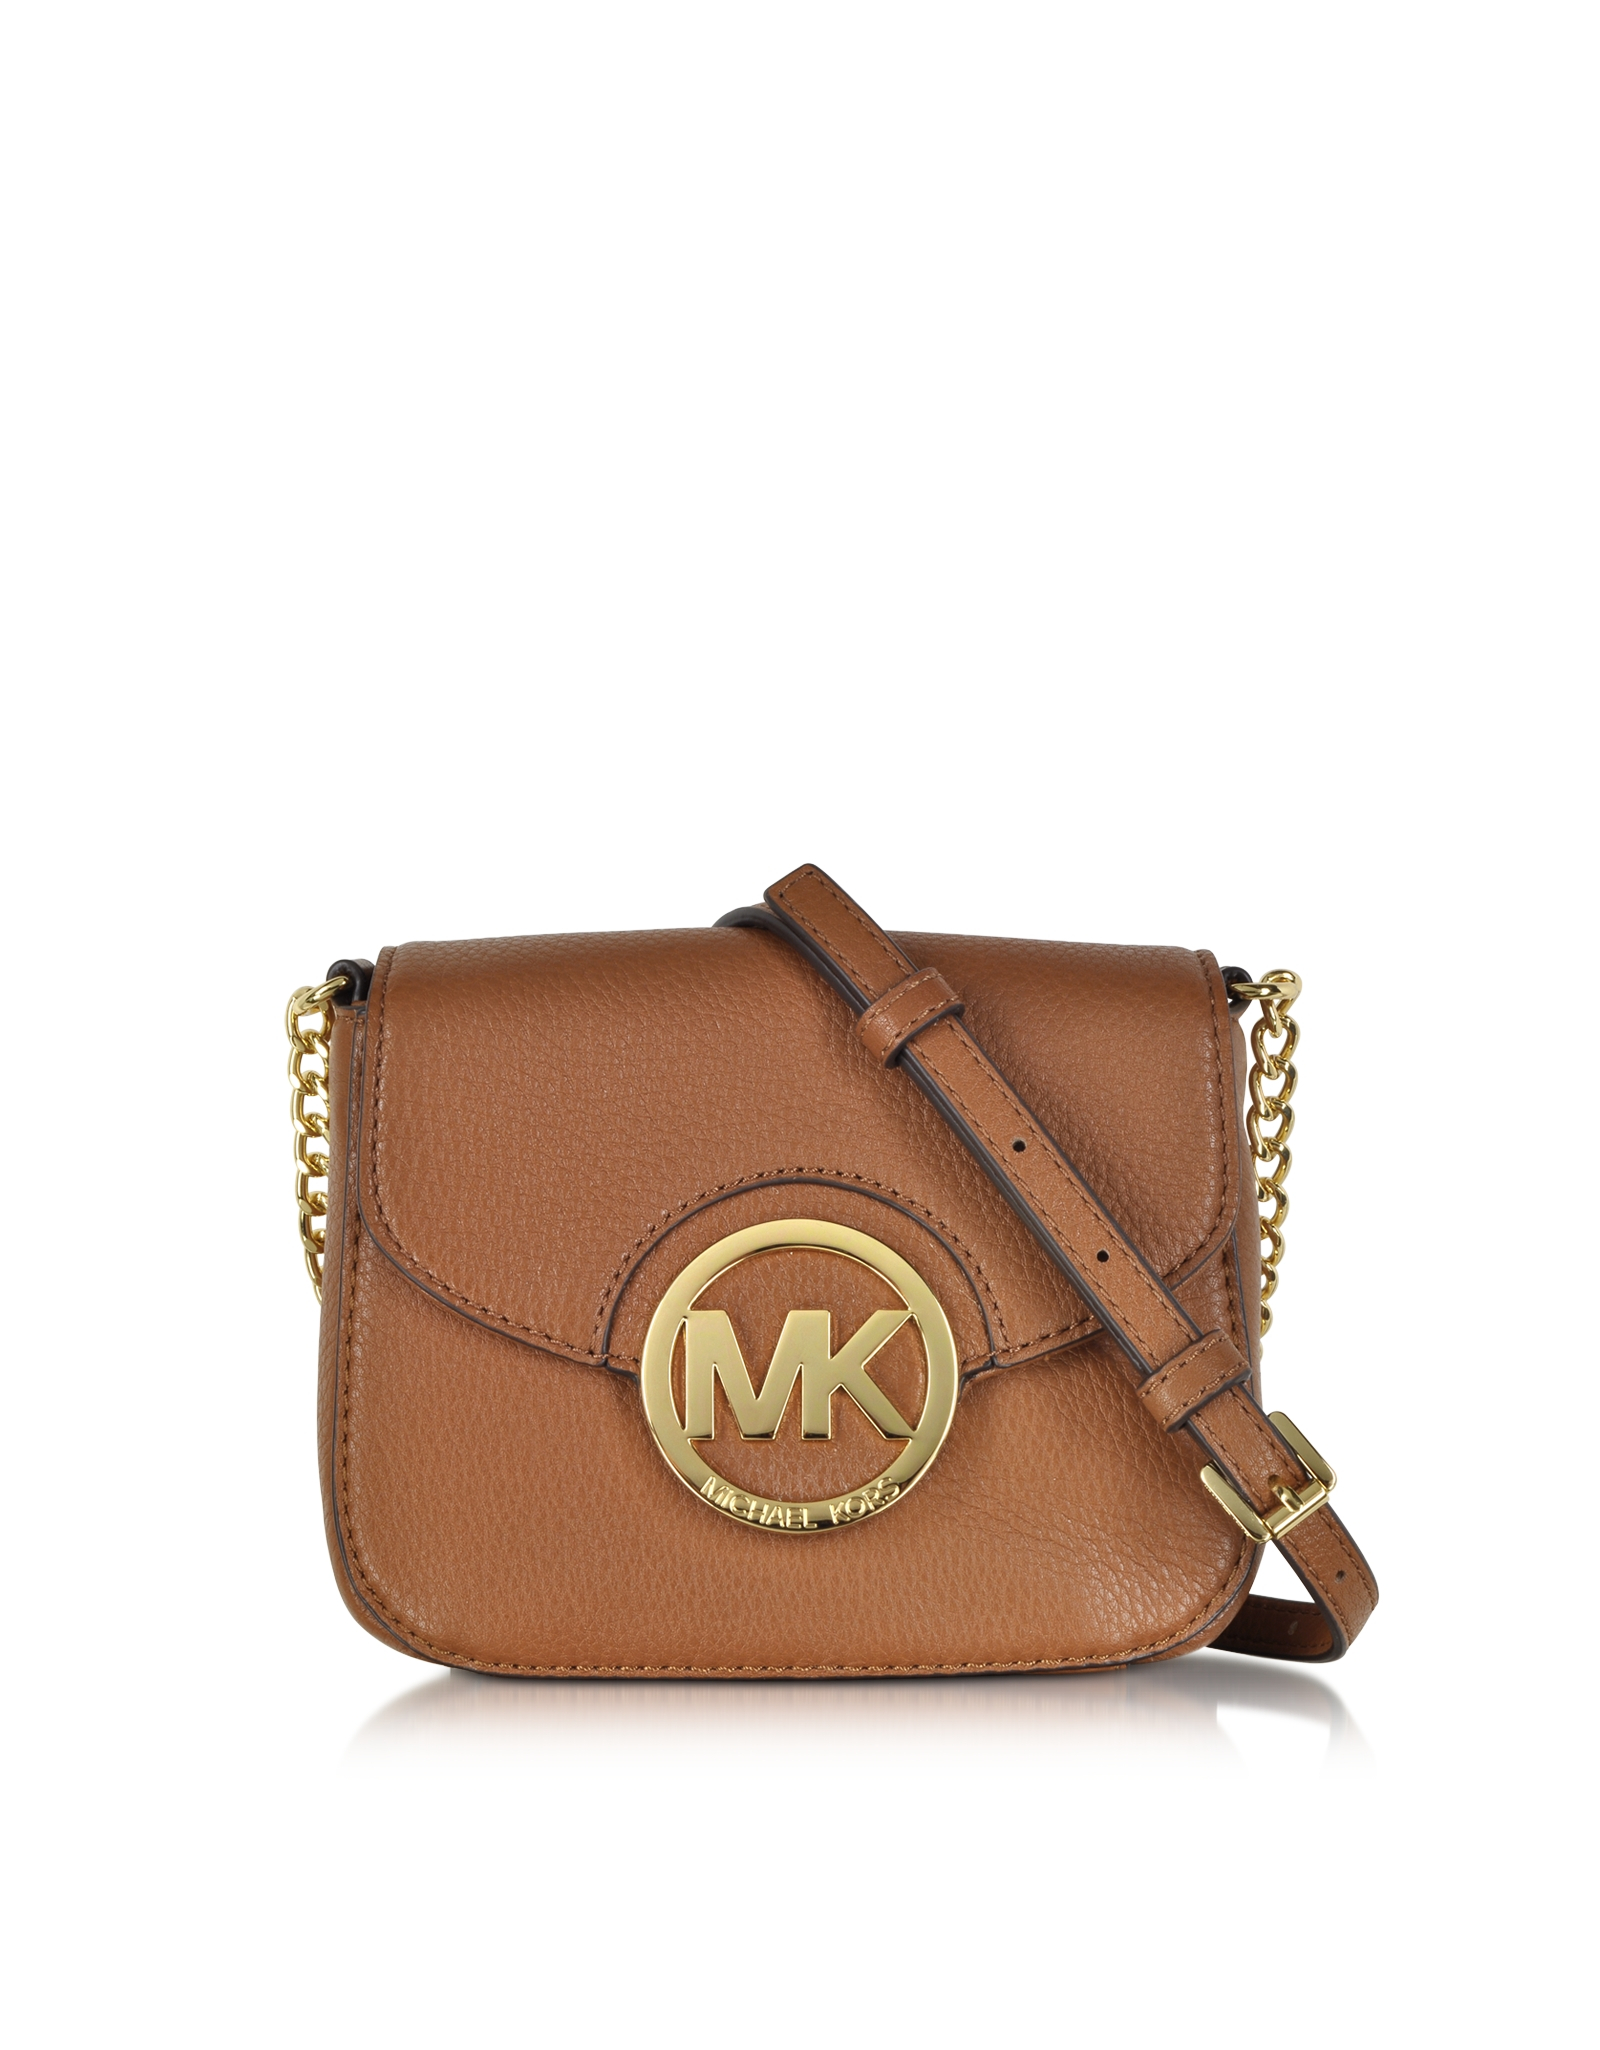 Michael Kors Fulton Luggage Leather Small Crossbody Bag In